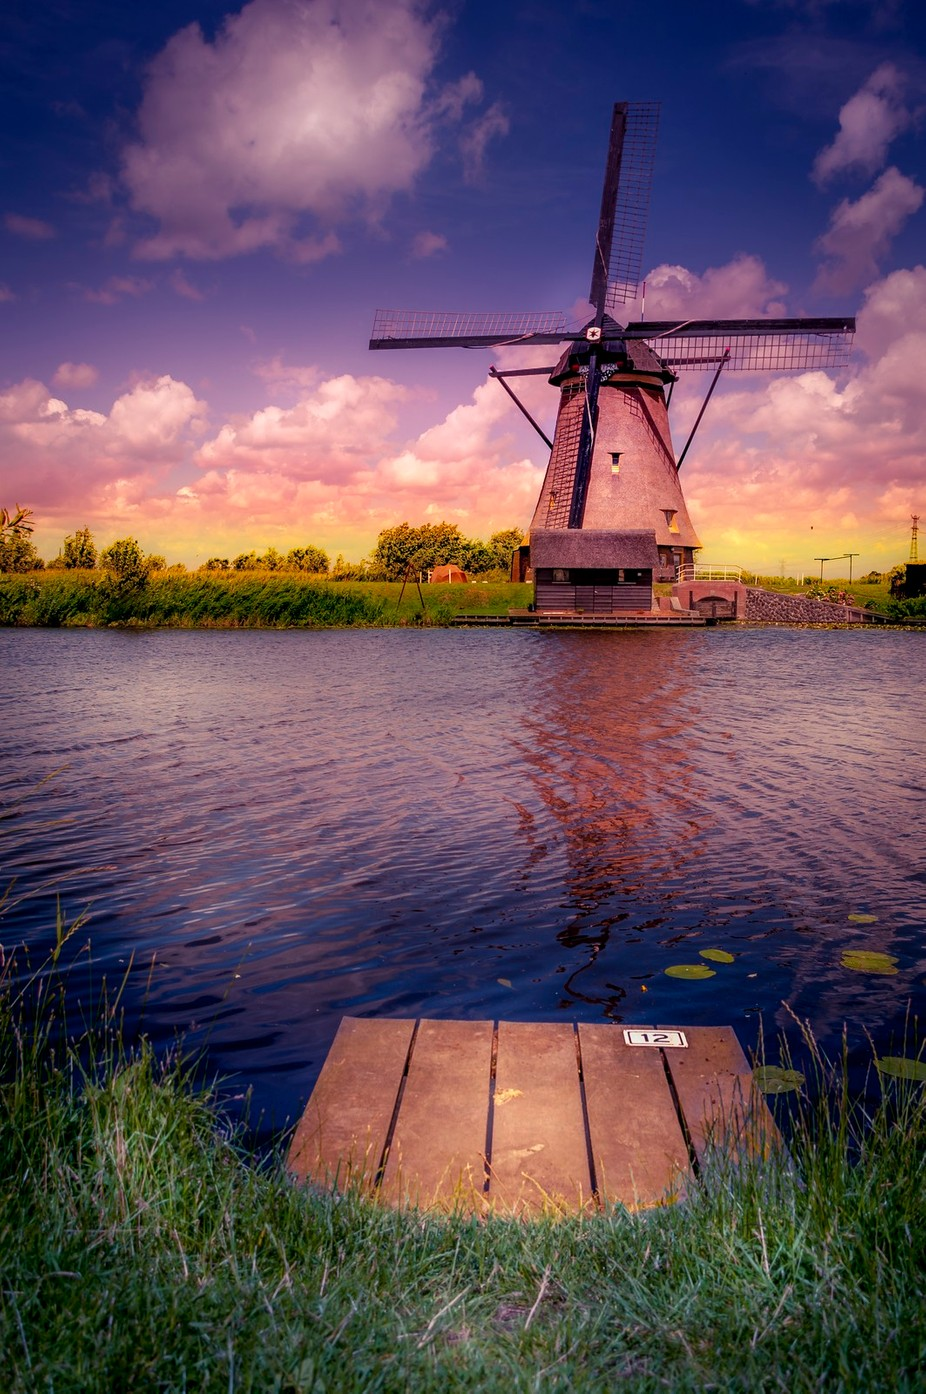 IMGP5706 by vanOgtropPhotography - Windmills Photo Contest